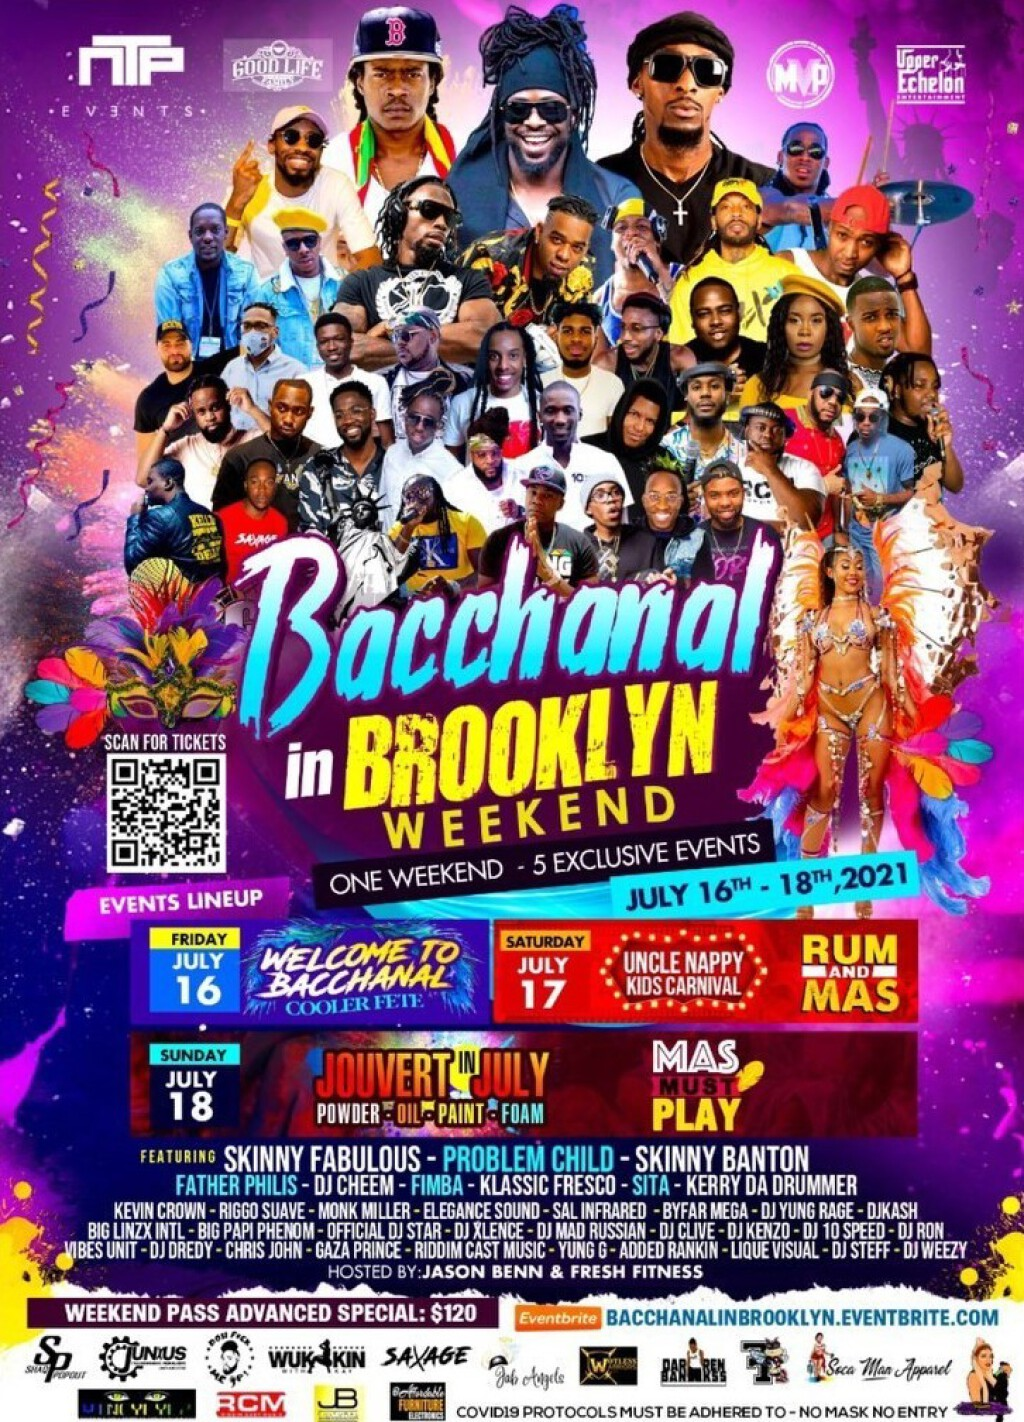 Bacchanal In Brooklyn All Access Bands flyer or graphic.